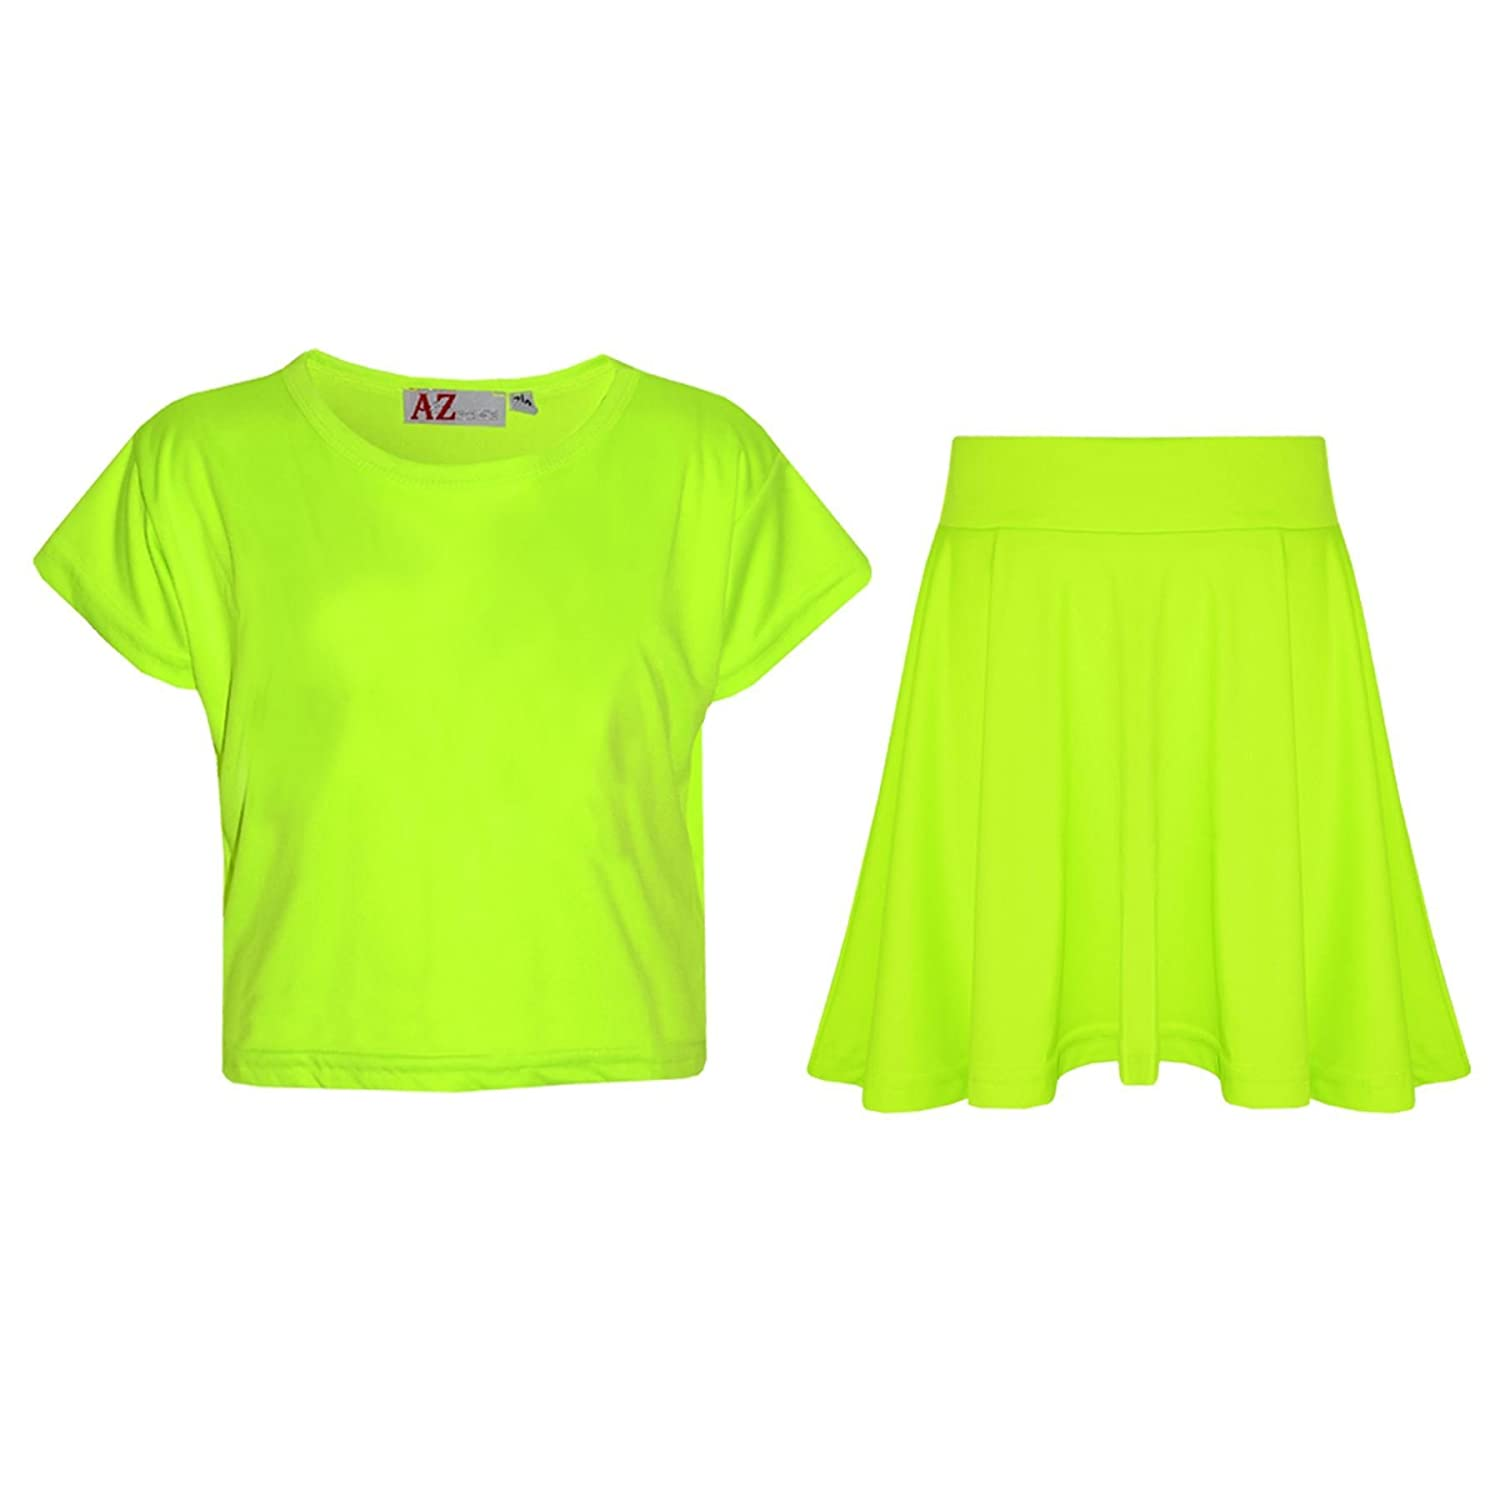 A2Z 4 Kids®®®® Girls Top Kids Plain Color Stylish Crop Top & Skater Skirt Set